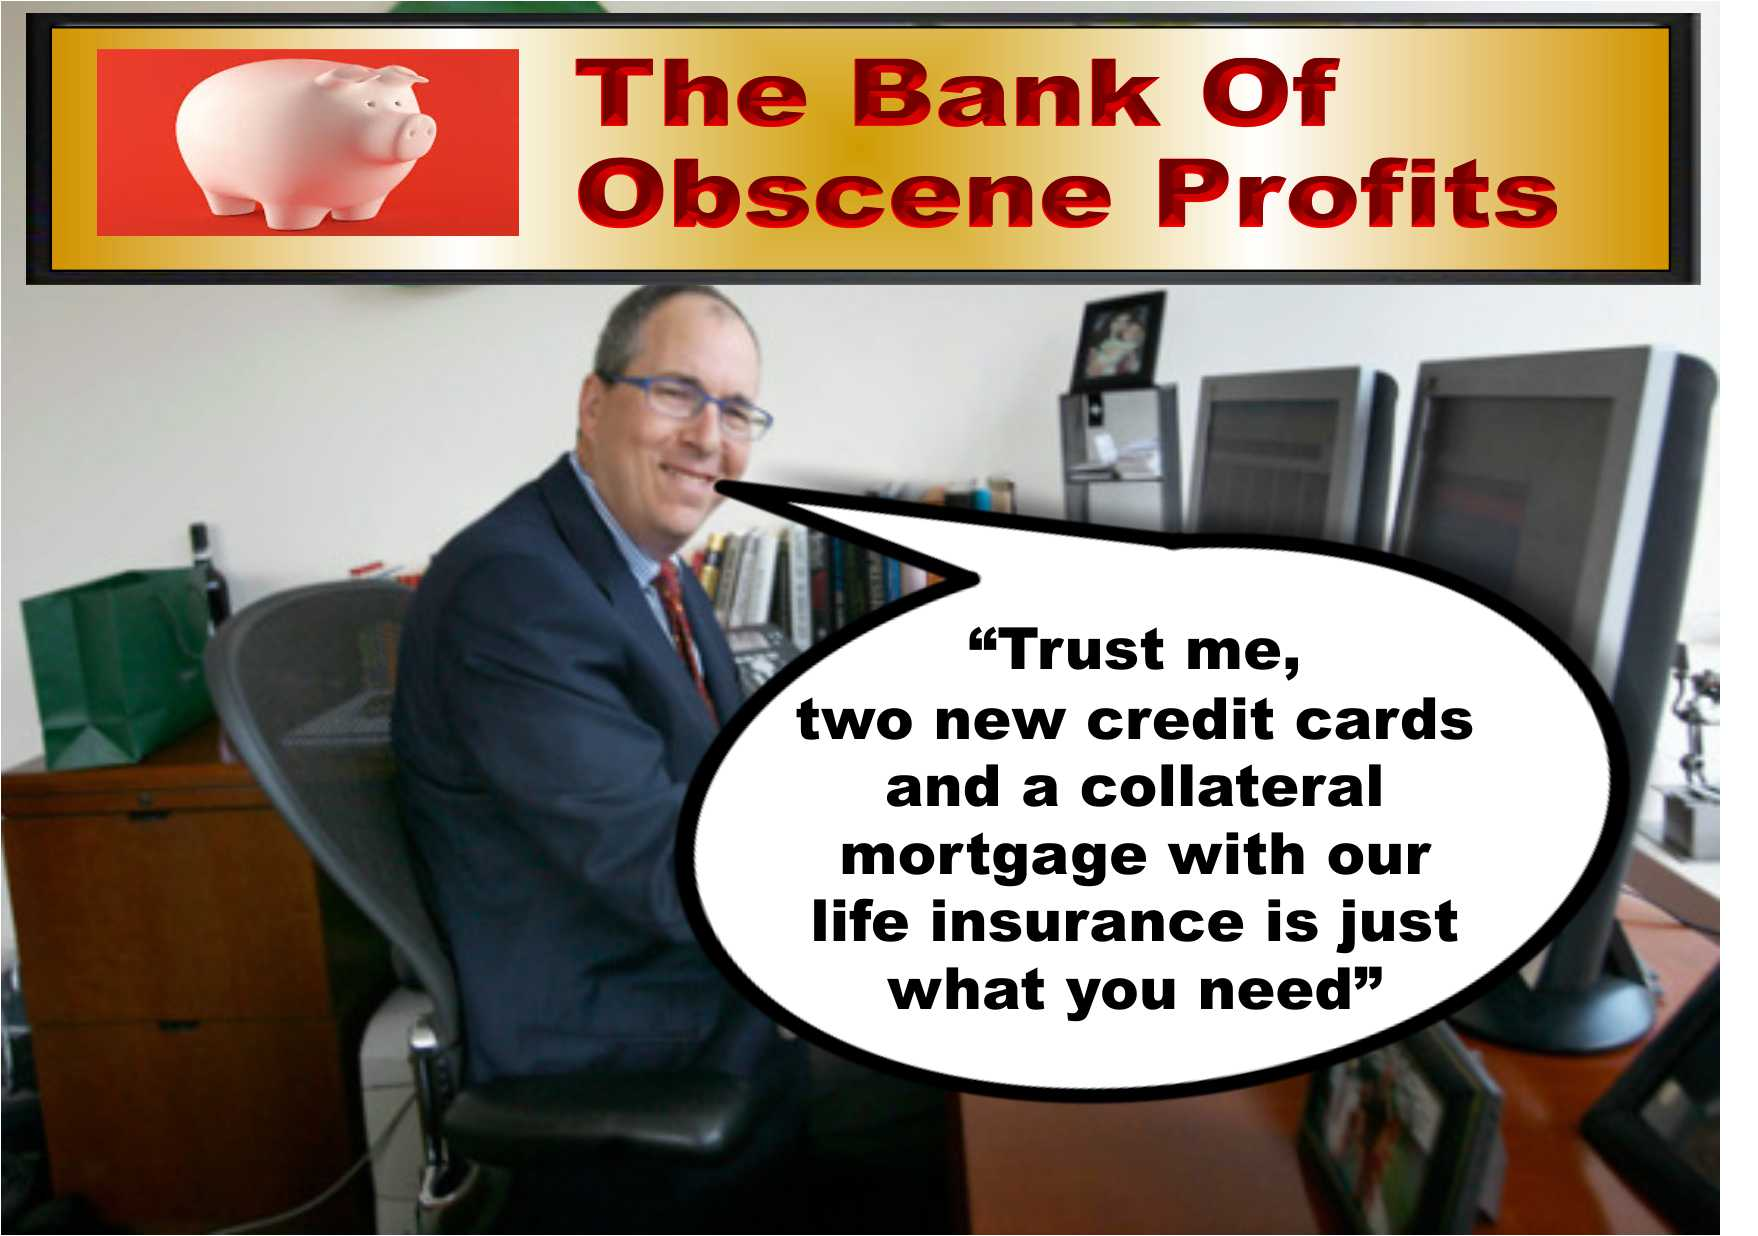 Disturbing situations happening within our main banking institutions